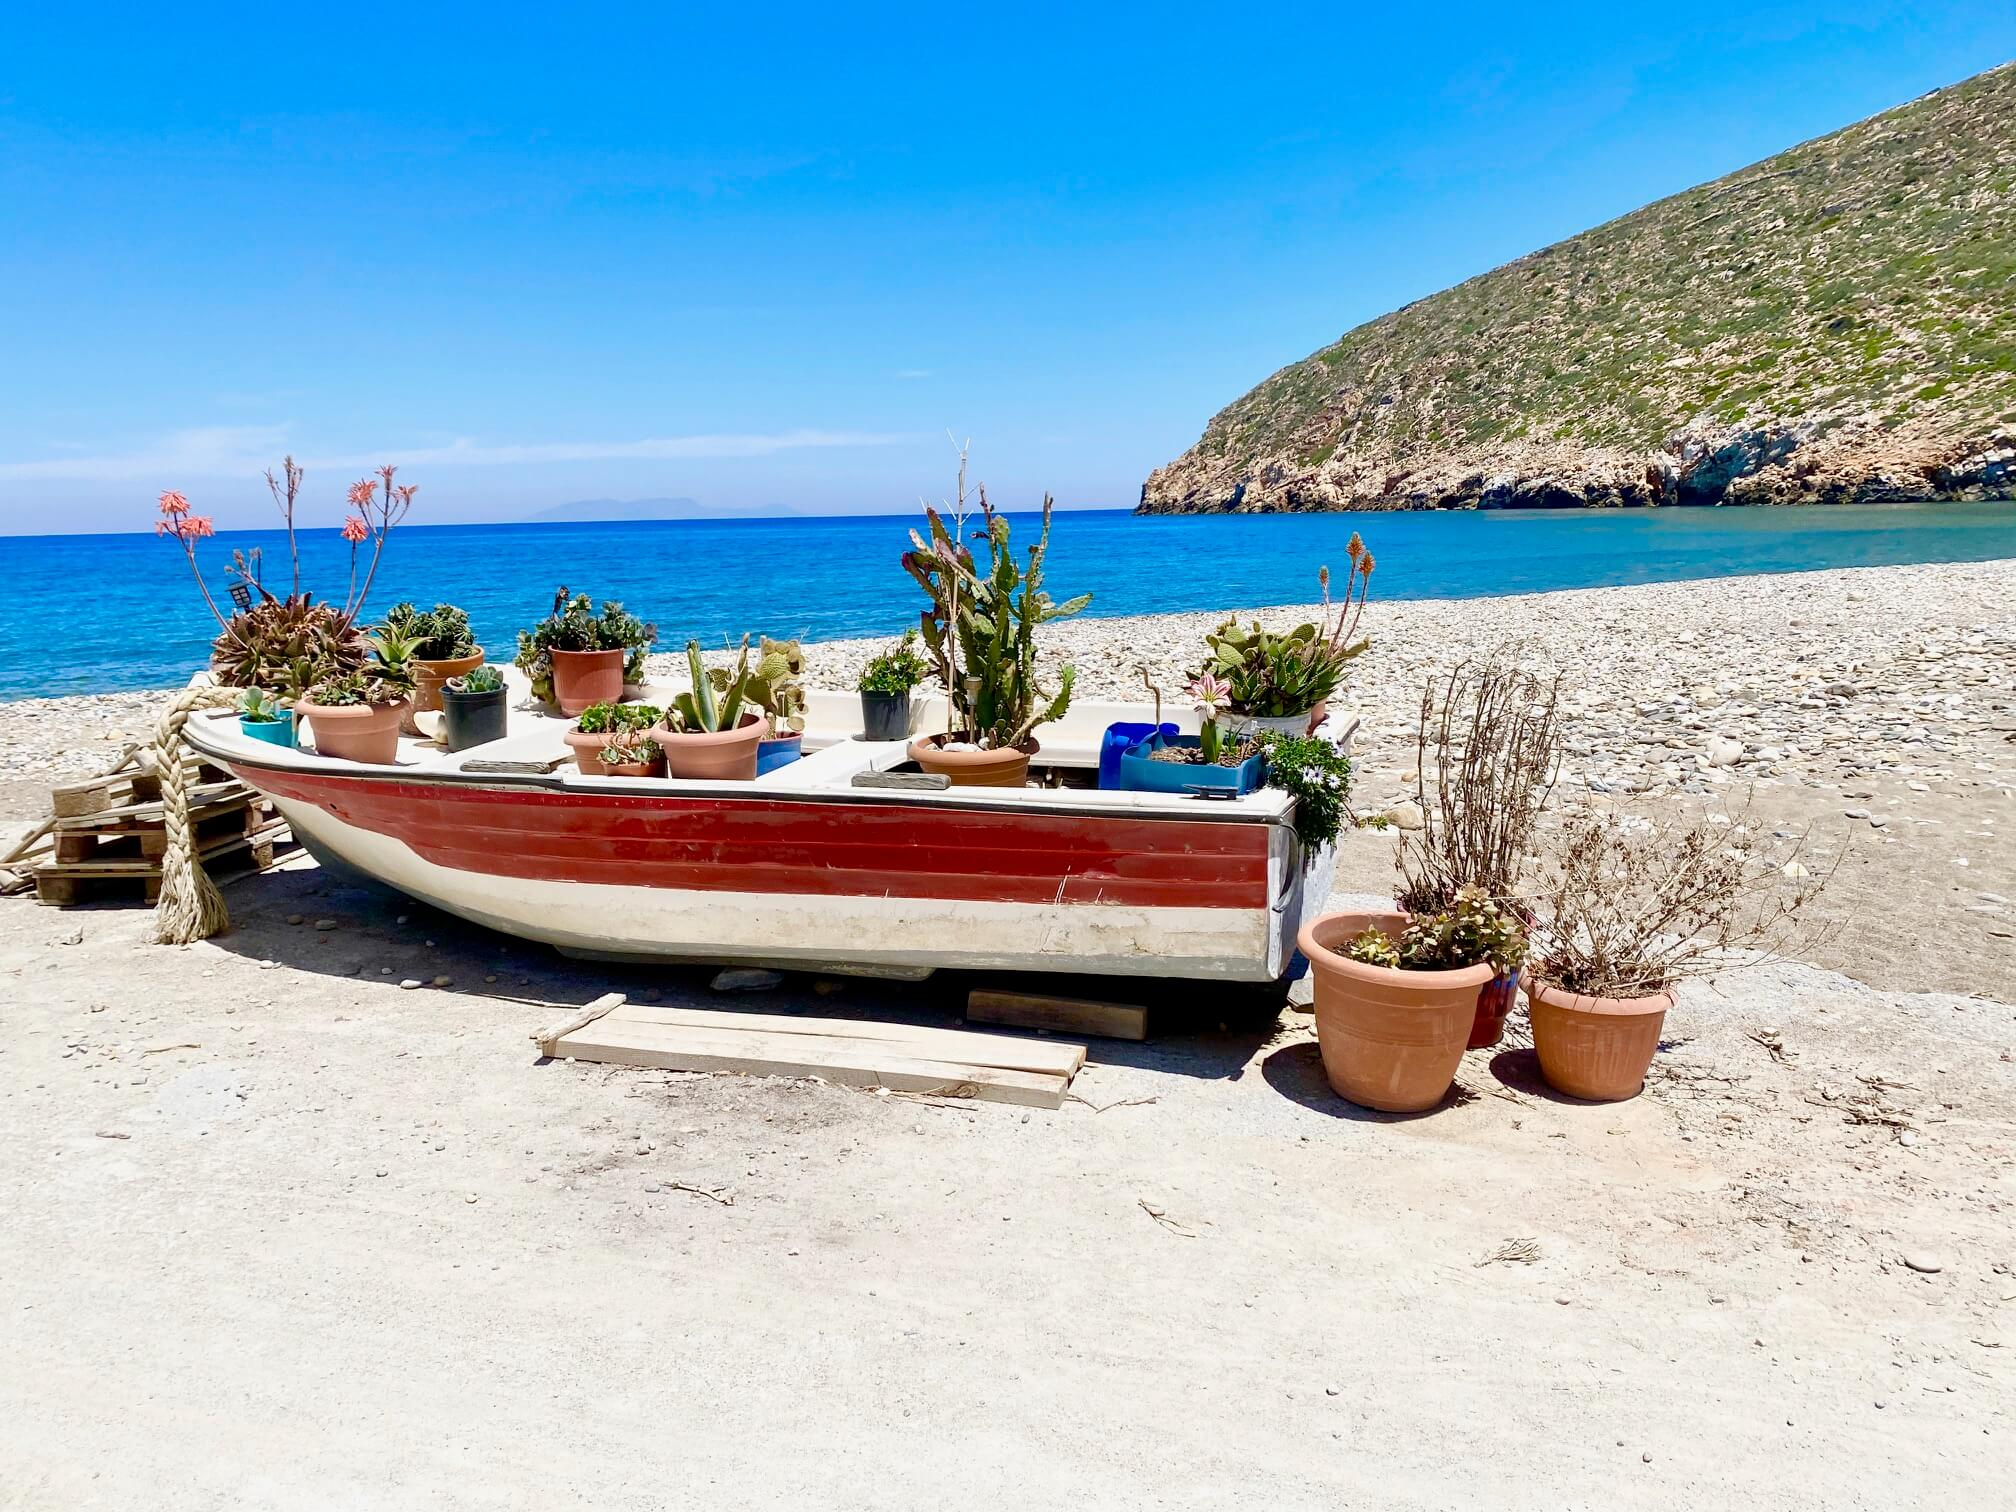 Why I moved to Greece from the UK